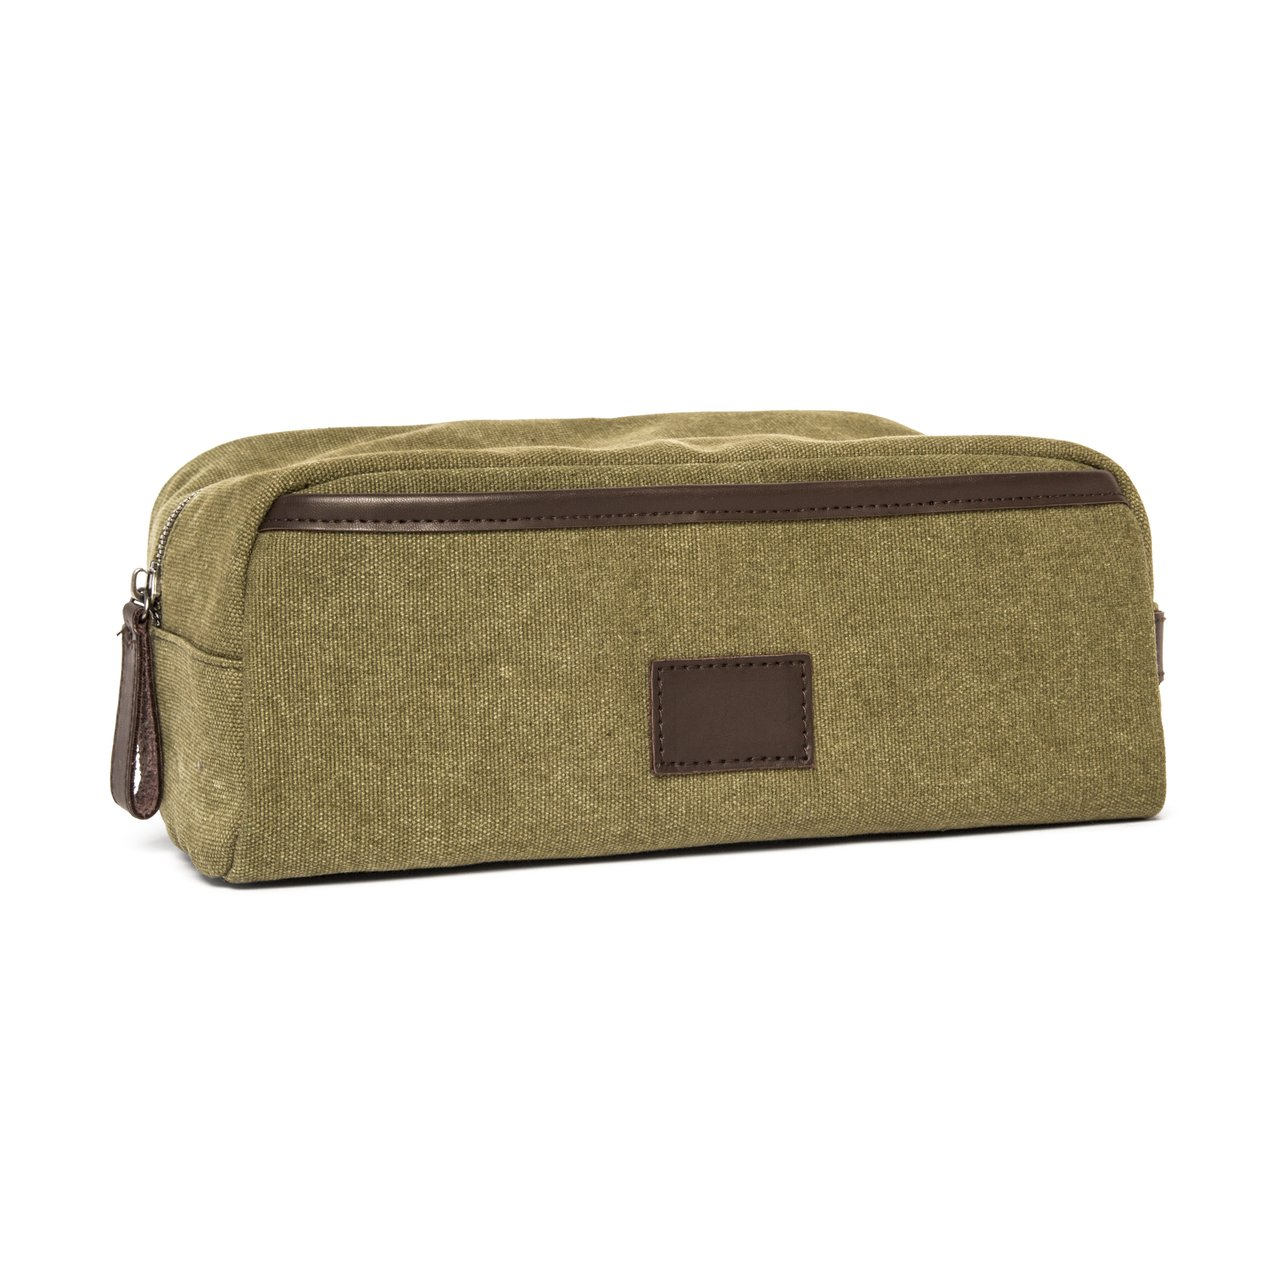 Excursion Toiletry Bag in Olive